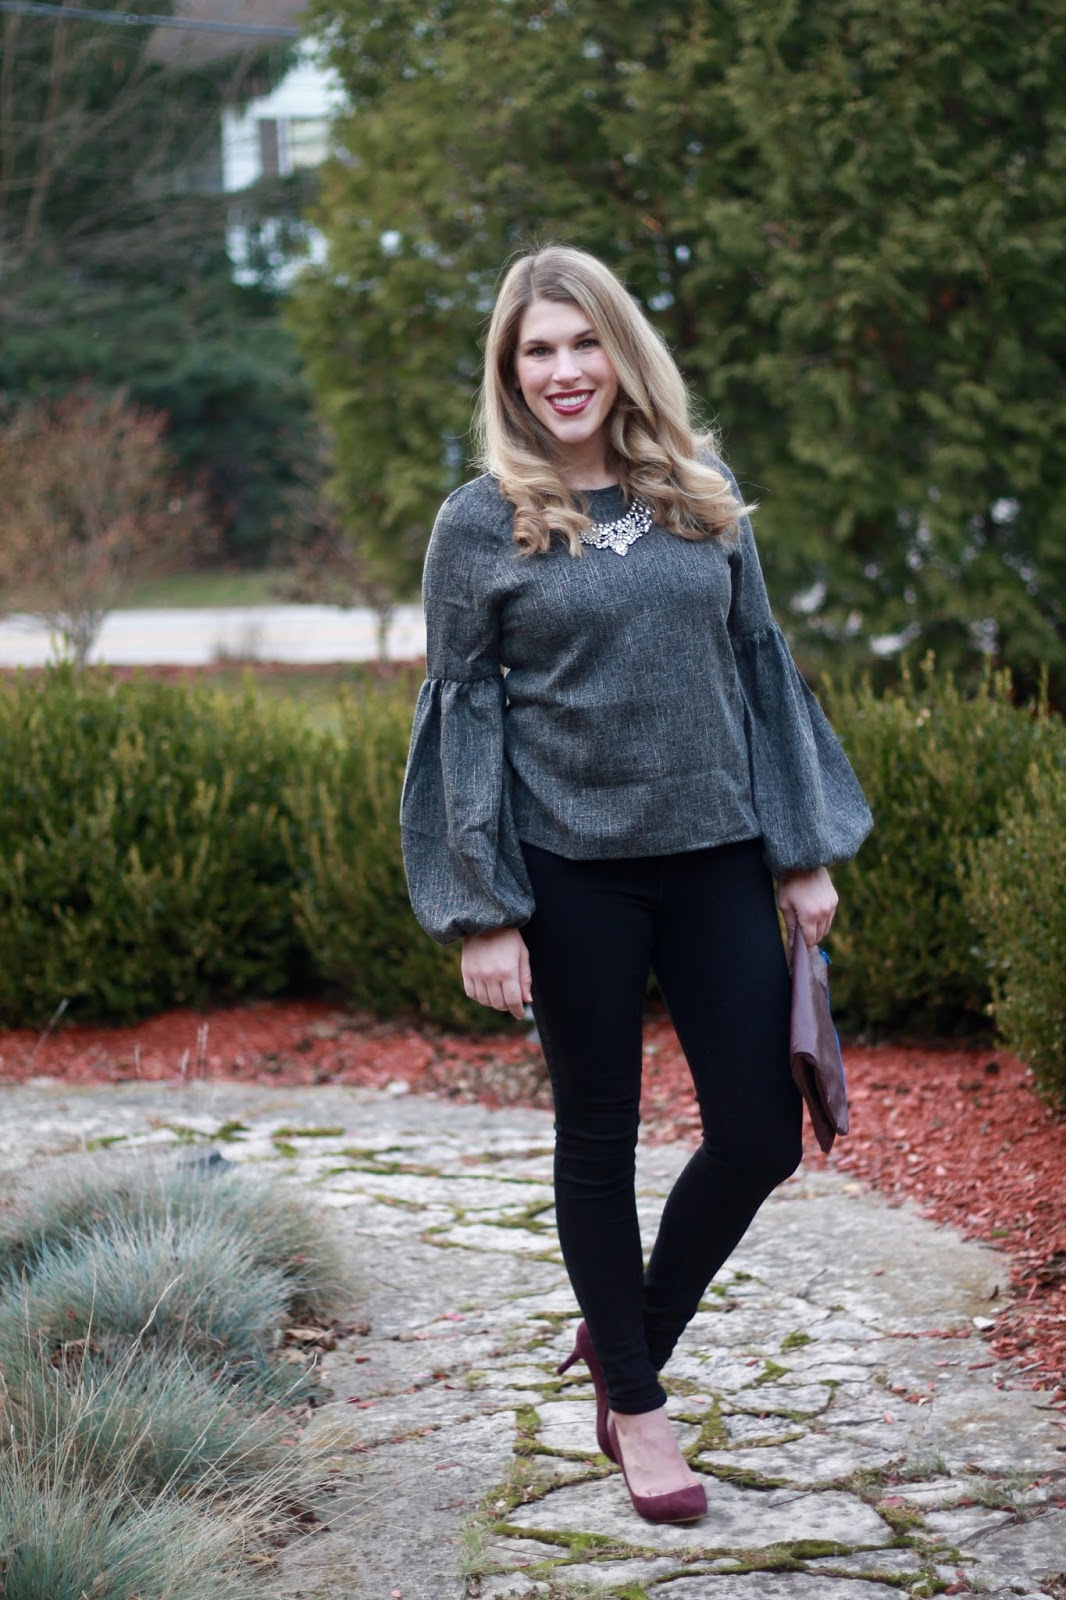 casual holiday outfit, shein grey lantern sleeve top, old navy black jeans, burgundy suede heels, burgundy fold over clutch